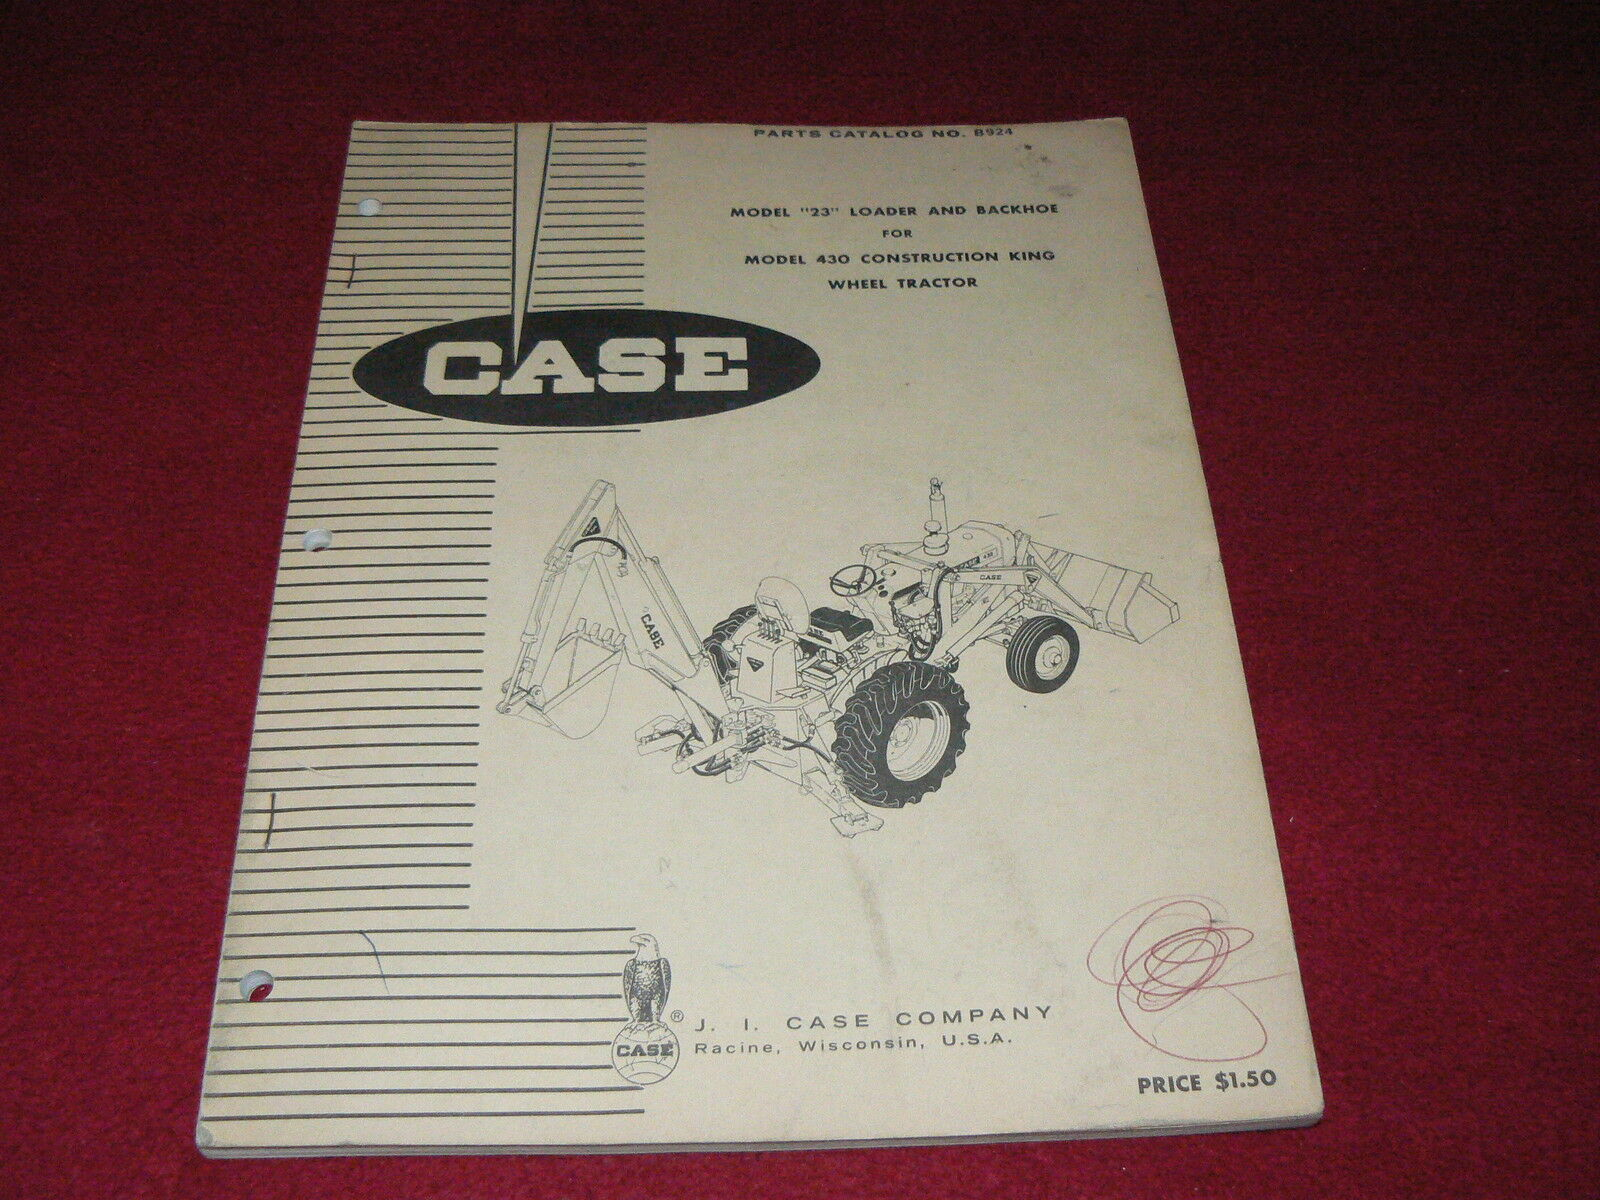 Case 480f Backhoe Parts Diagram Tractor Wiring Loader Manual Of Only Available 1600x1200